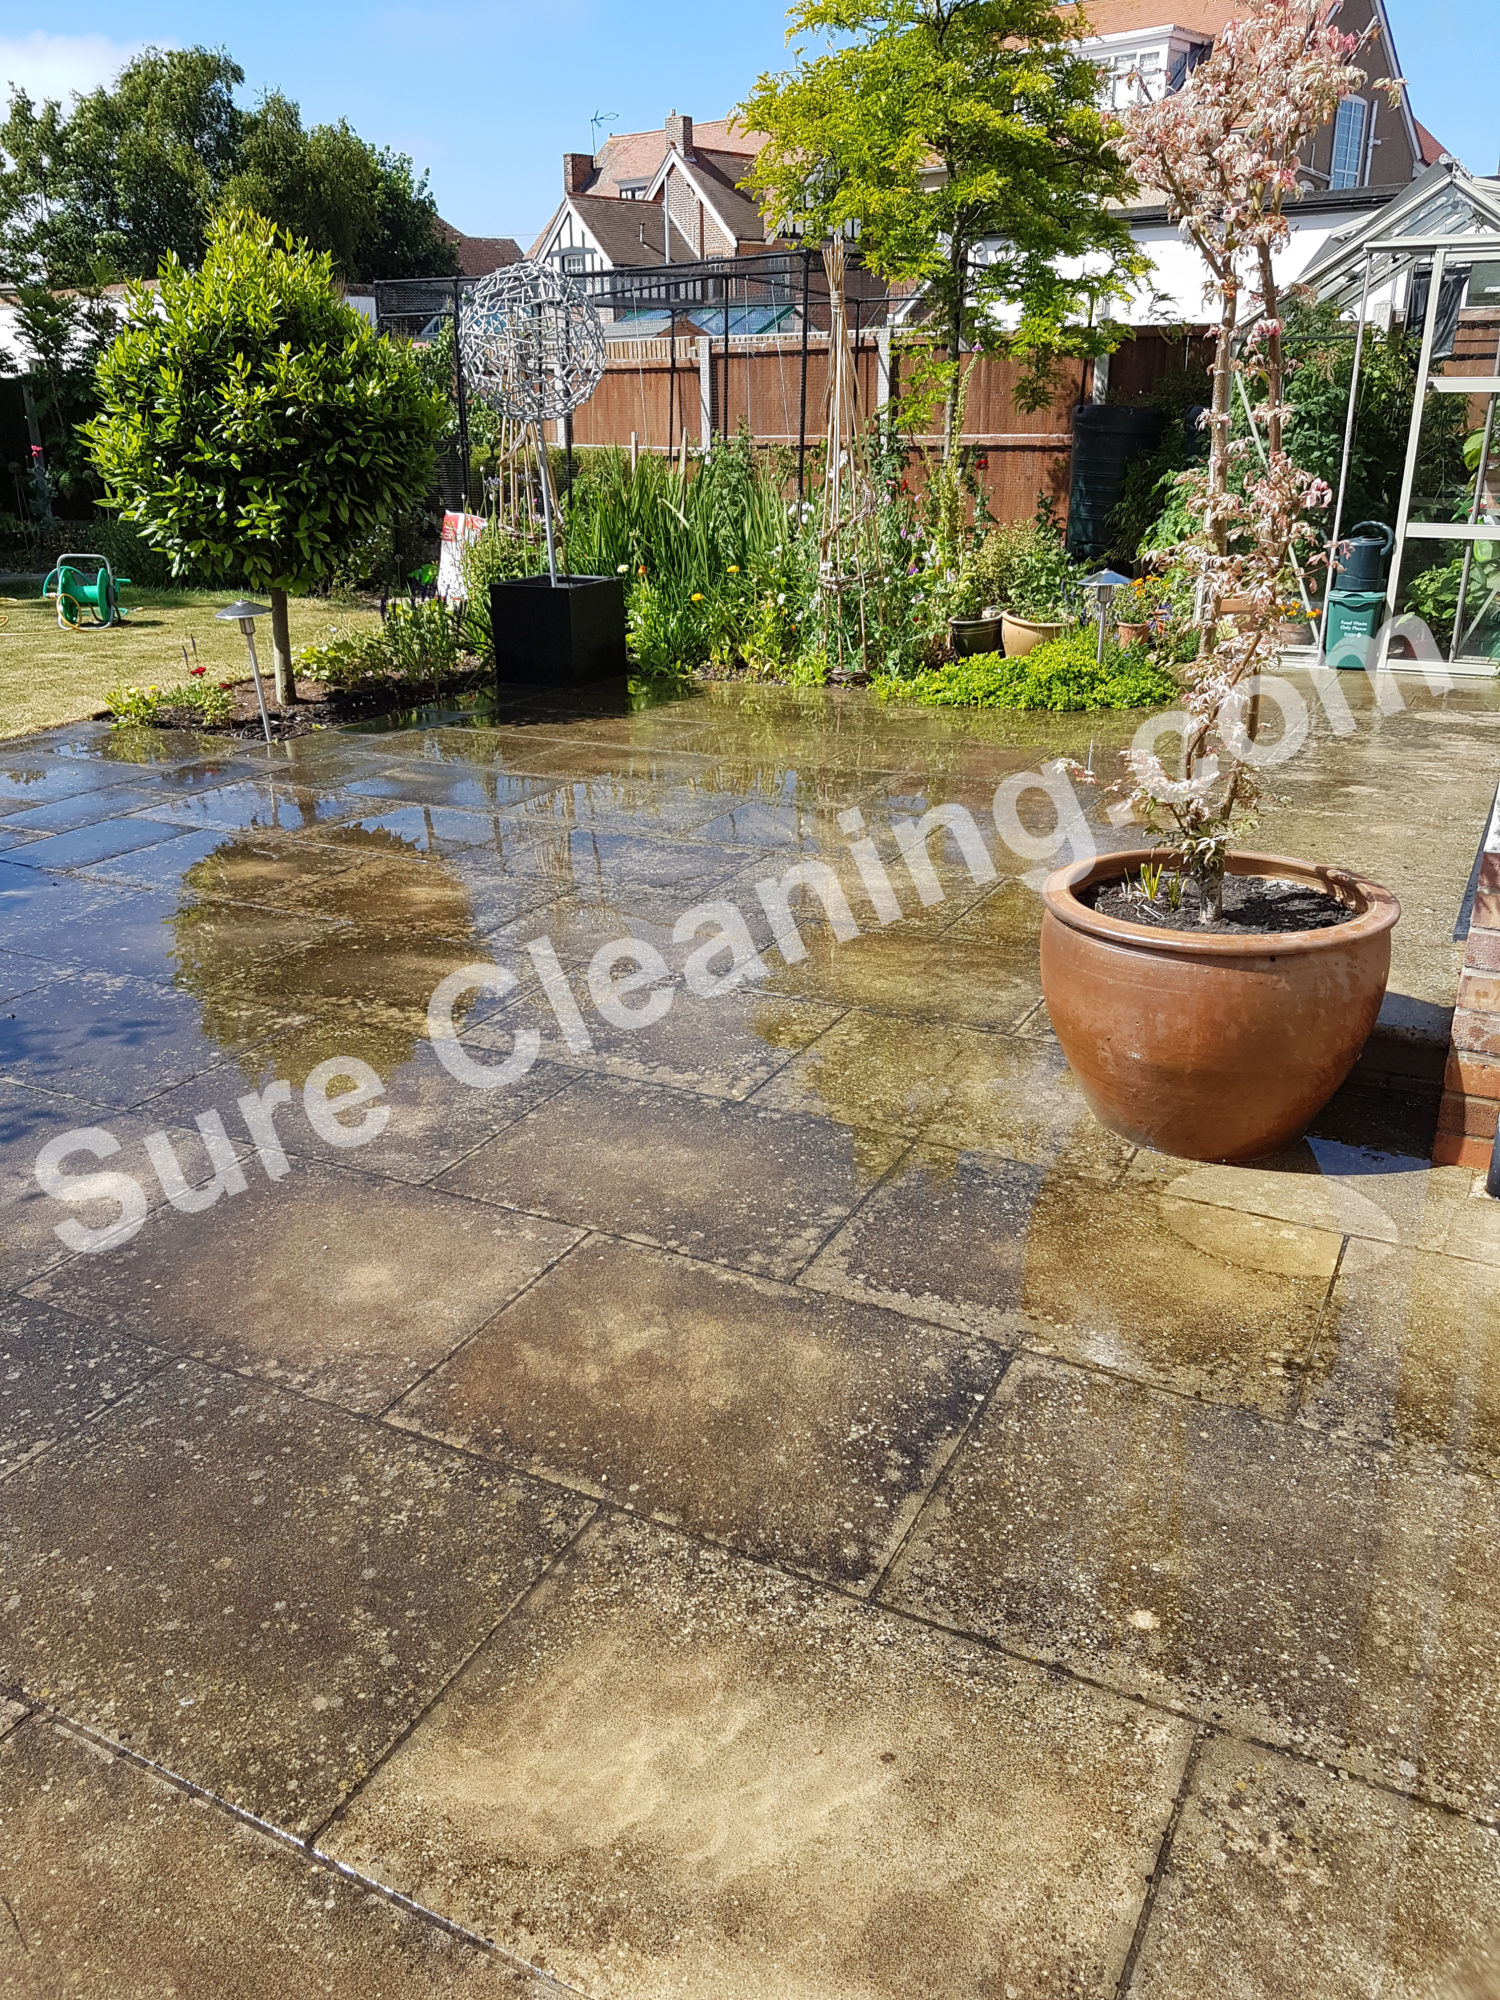 Patio with black spot before being pressure cleaned